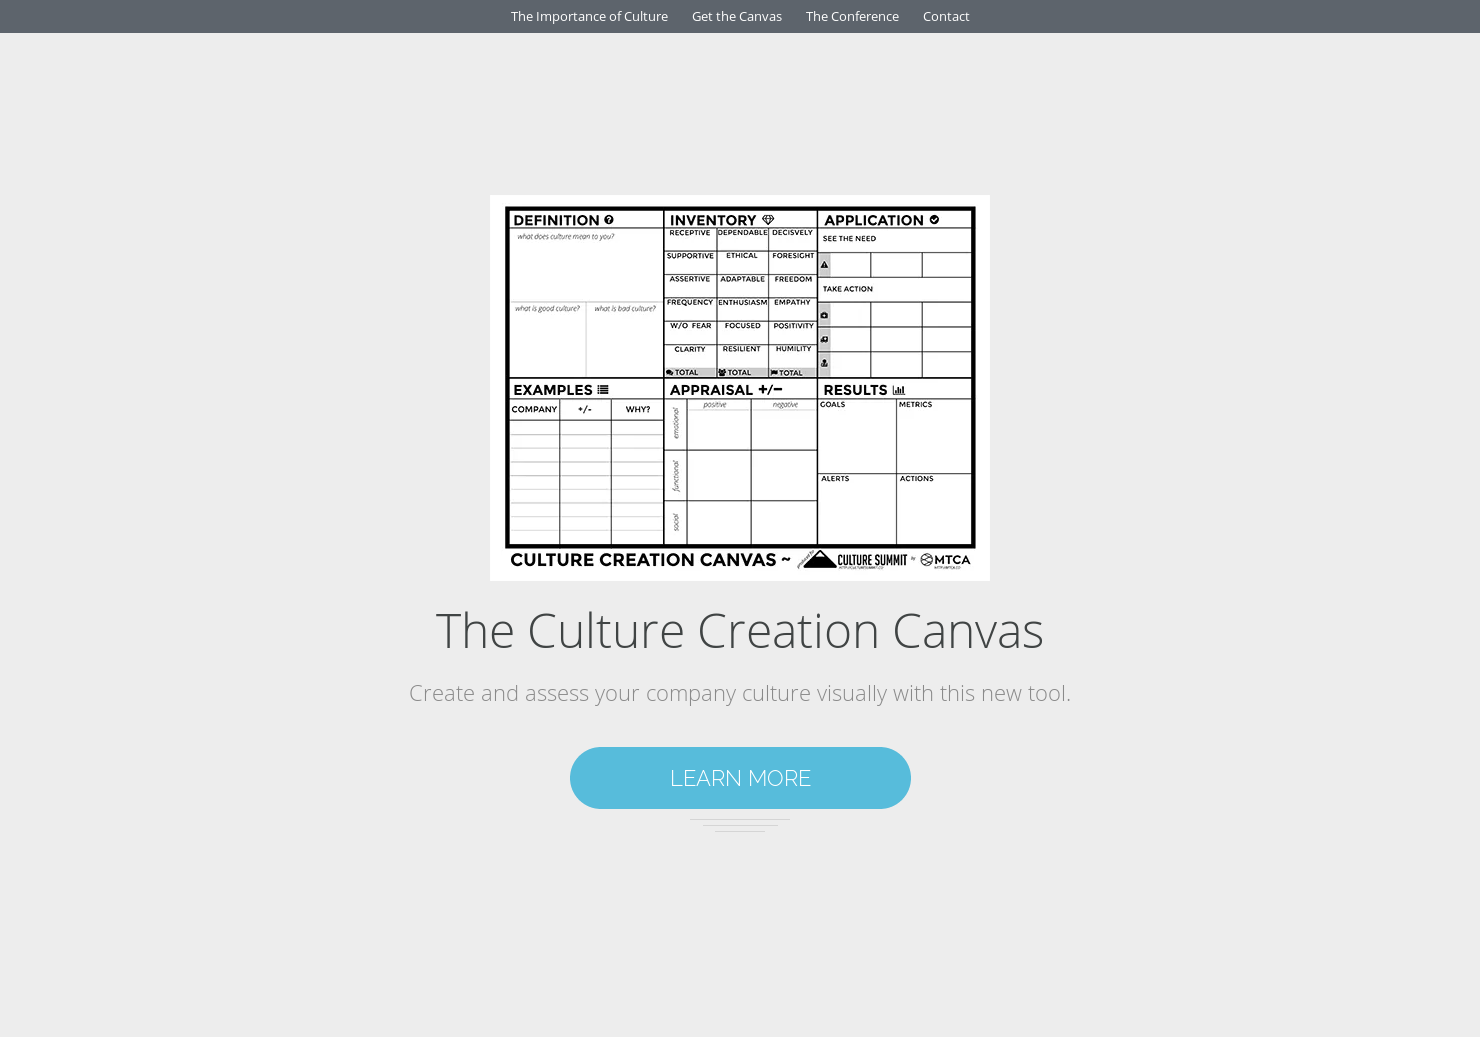 Culture Creation Canvas - Create & assess your company